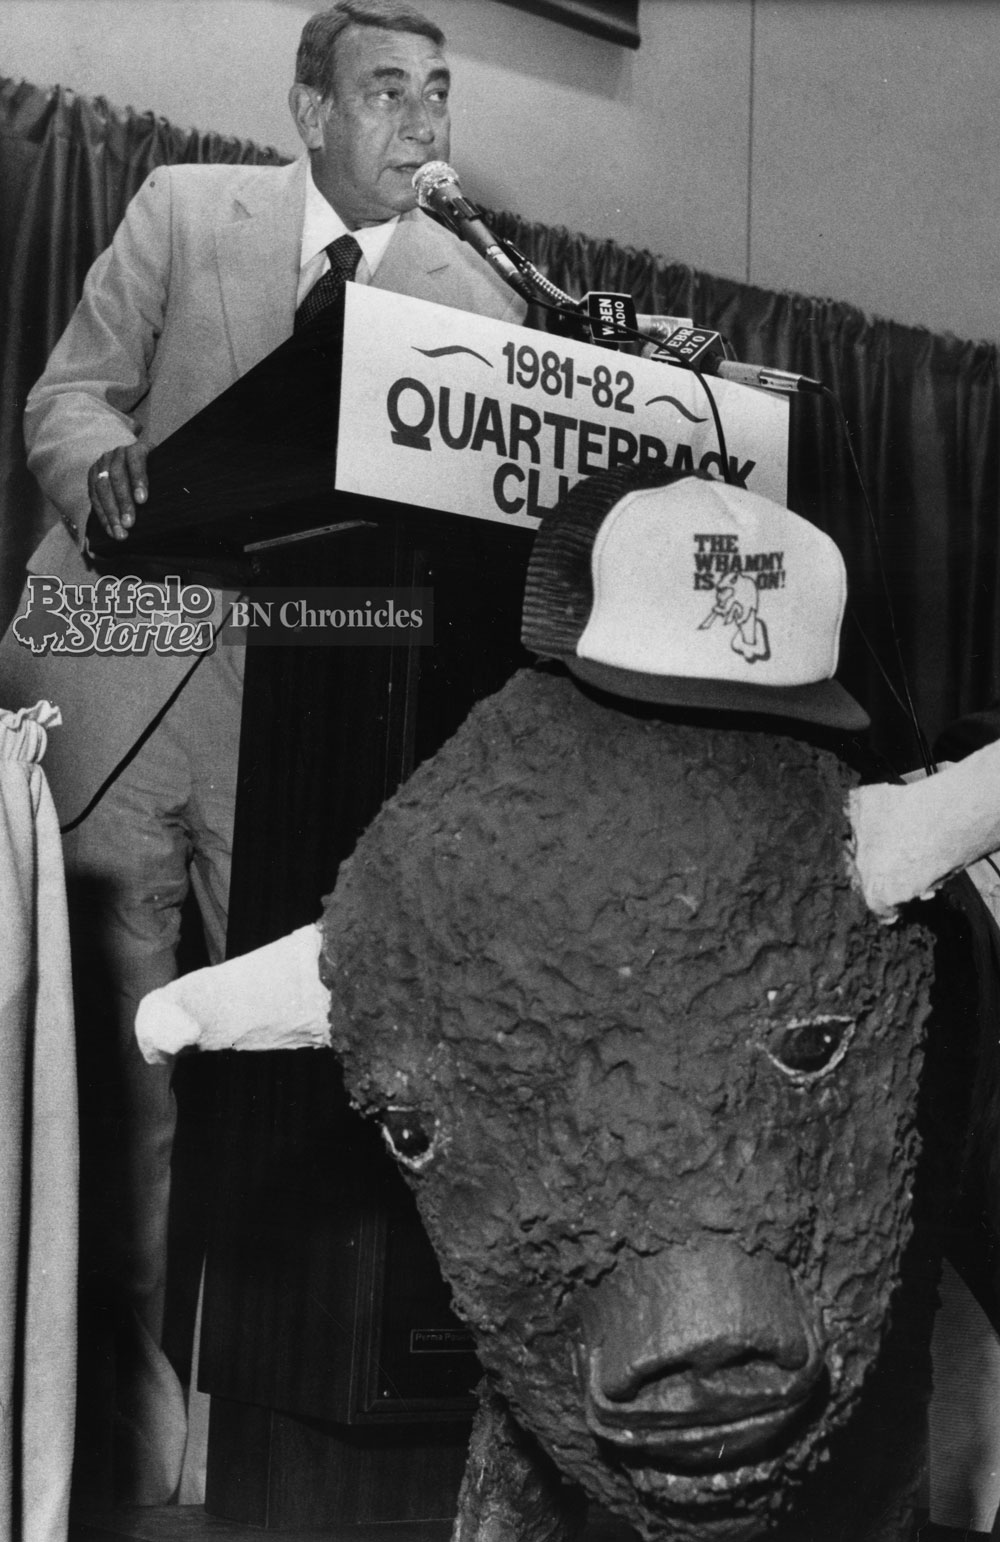 Howard Cosell speaks to the Buffalo Quarterback Club Luncheon, 1981.